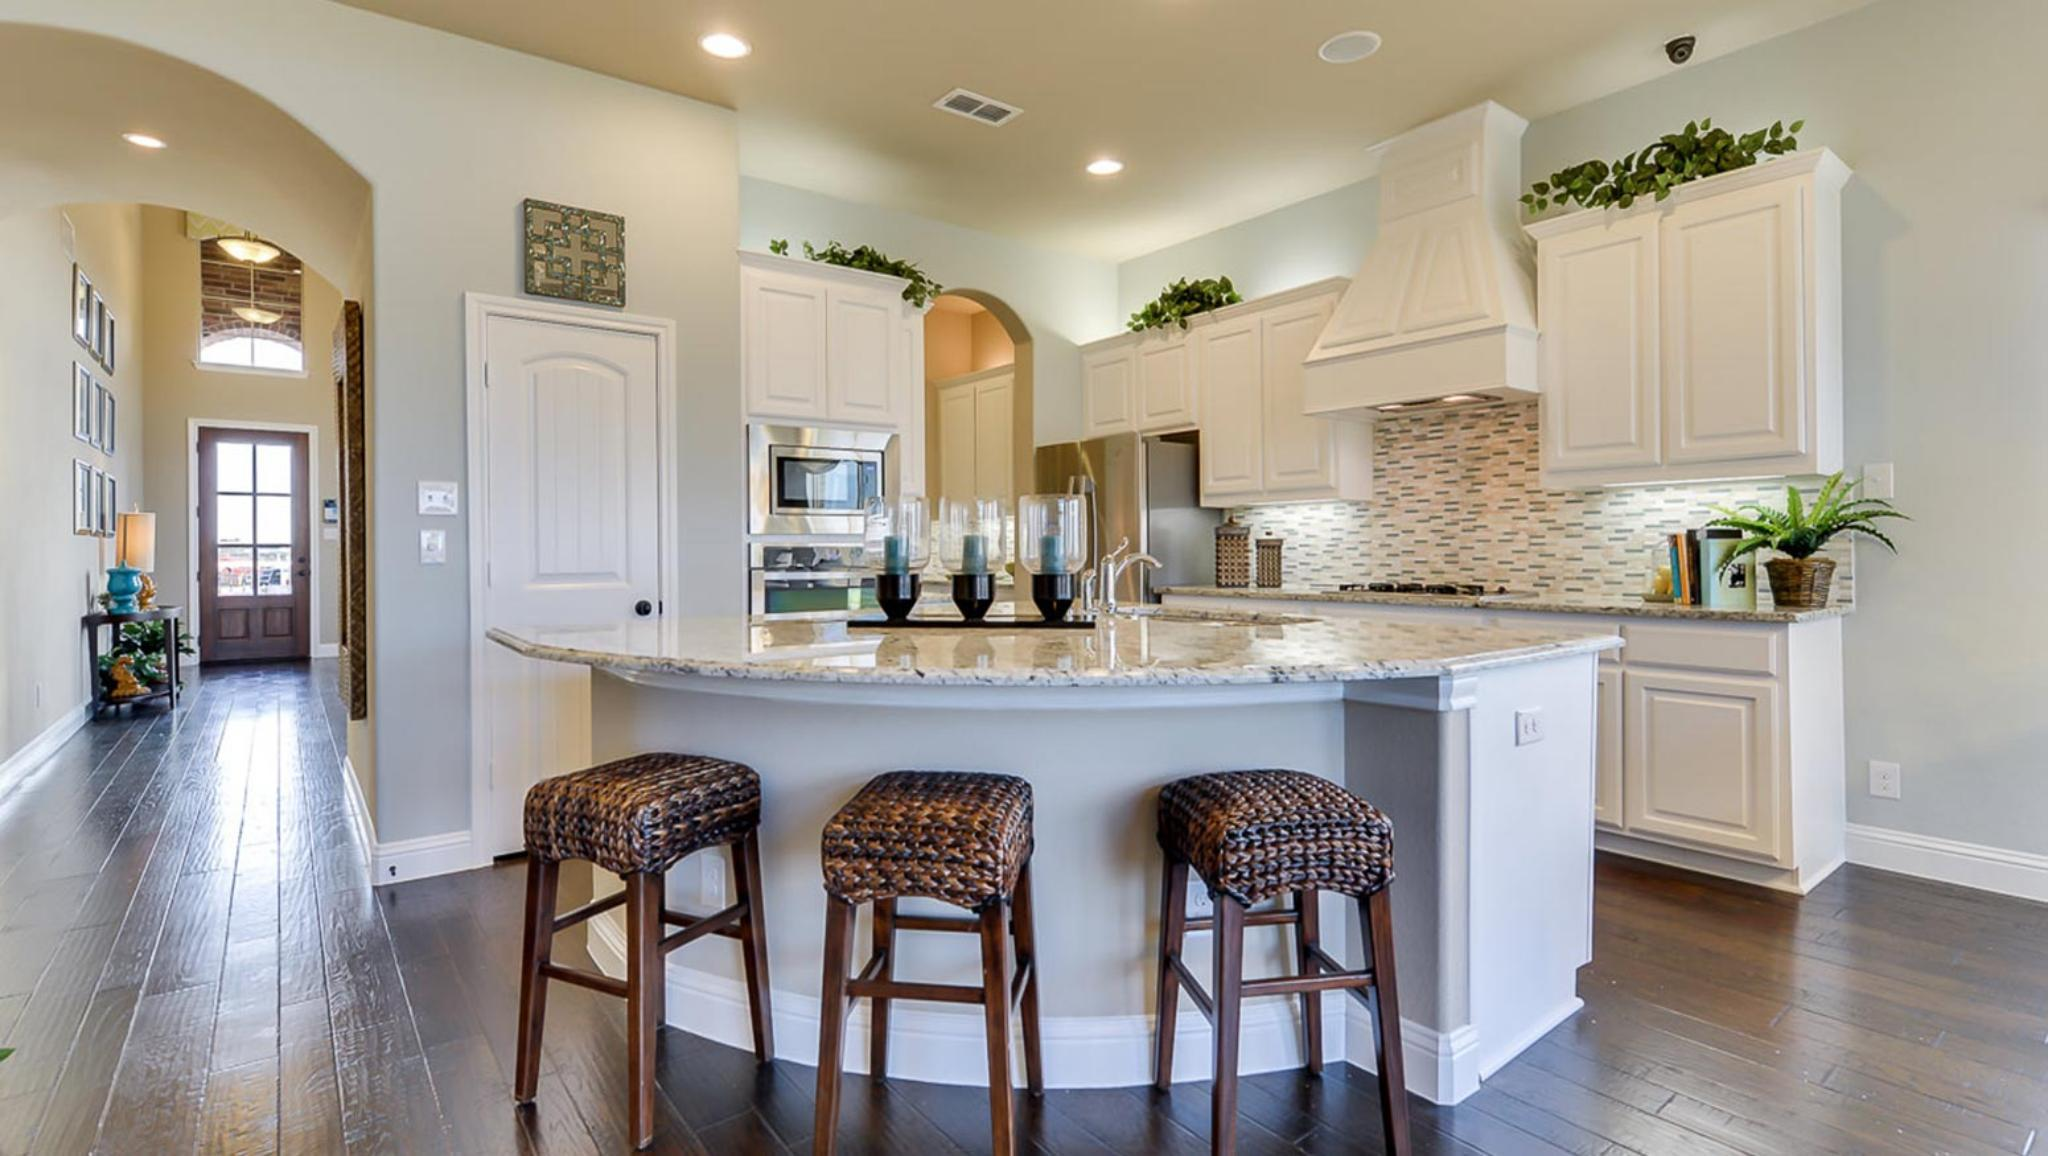 Kitchen featured in the Annabelle By Trendmaker Homes in Fort Worth, TX